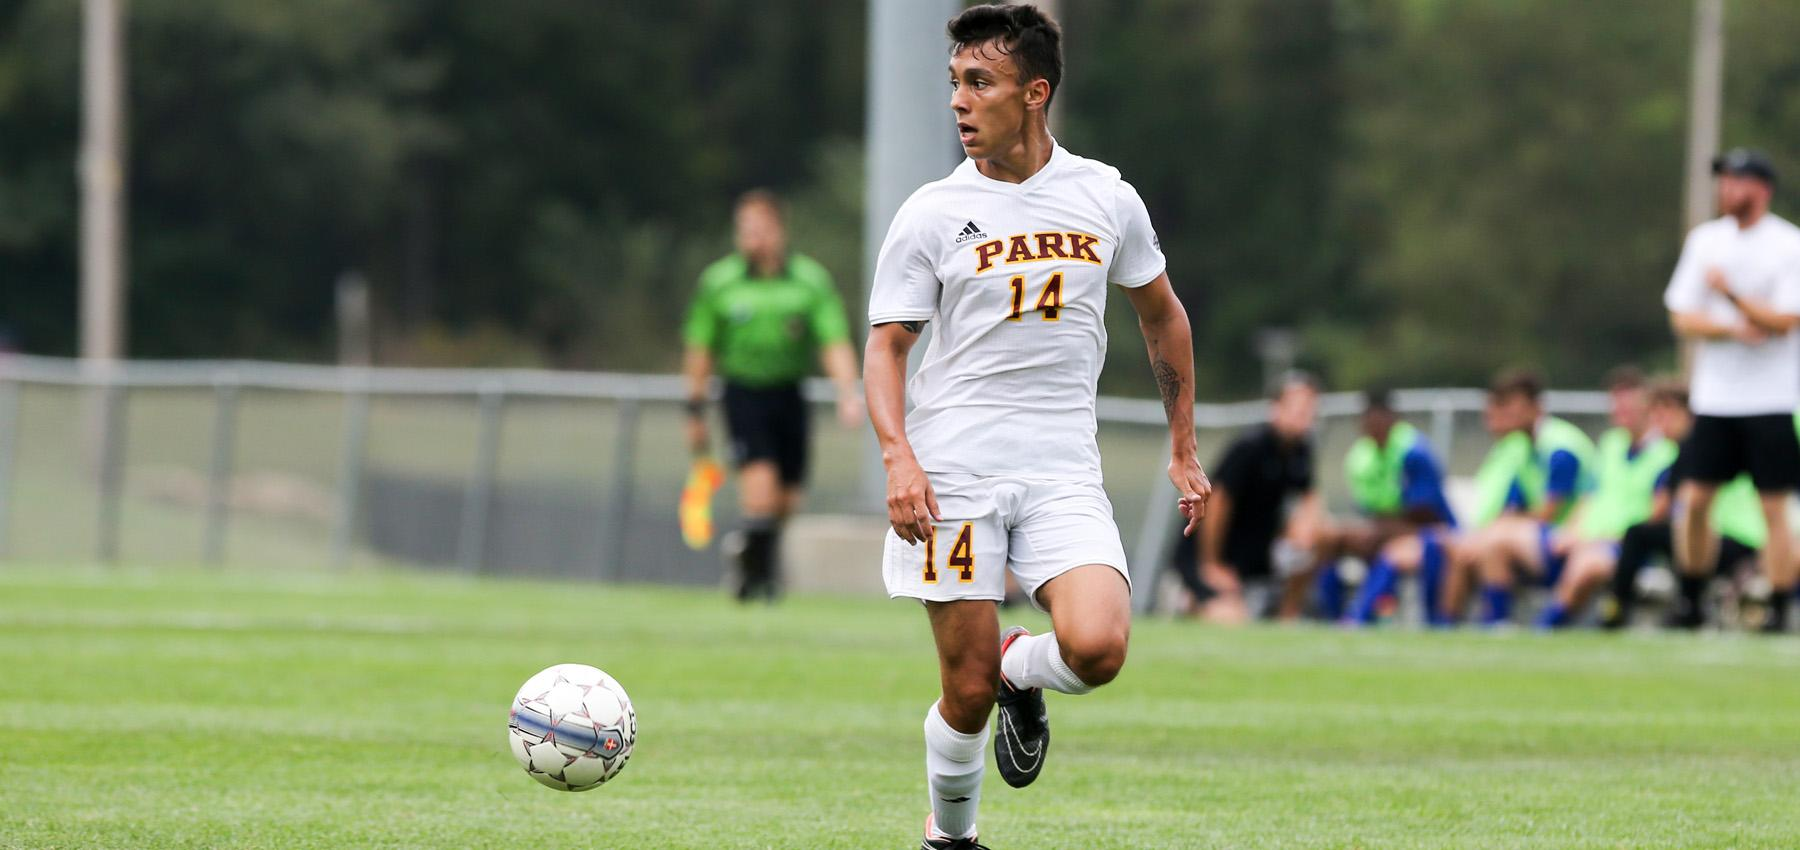 Men's Soccer Notebook: Pirates Look To Continue Winning Ways vs Spartans